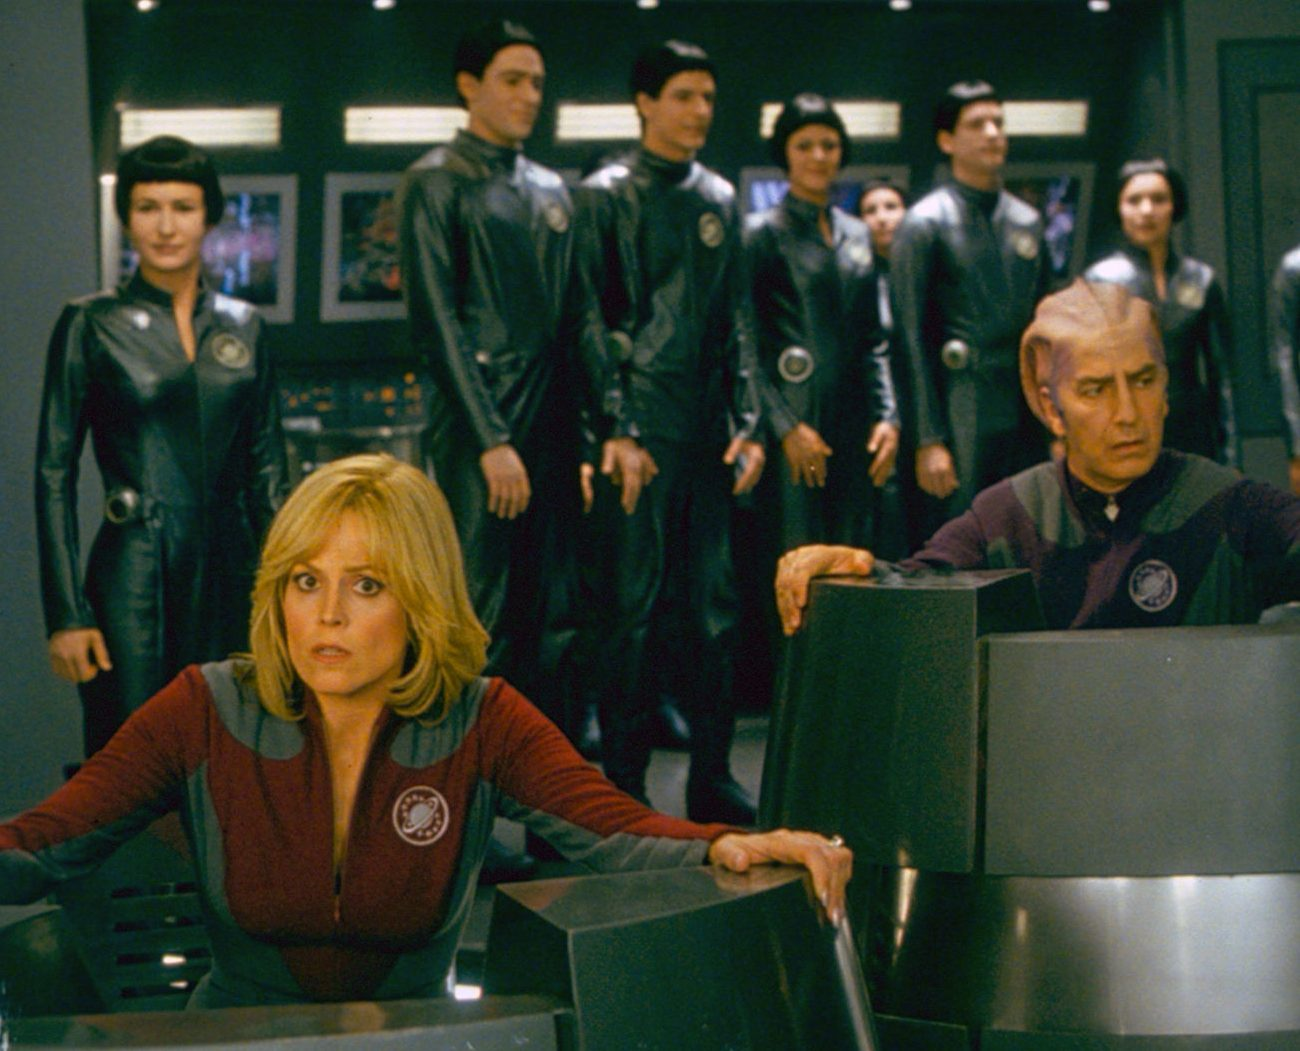 galaxyquest 1999 photo 13 e1619606531805 30 Spacefaring Facts About Hilarious Sci-Fi Comedy Film Galaxy Quest